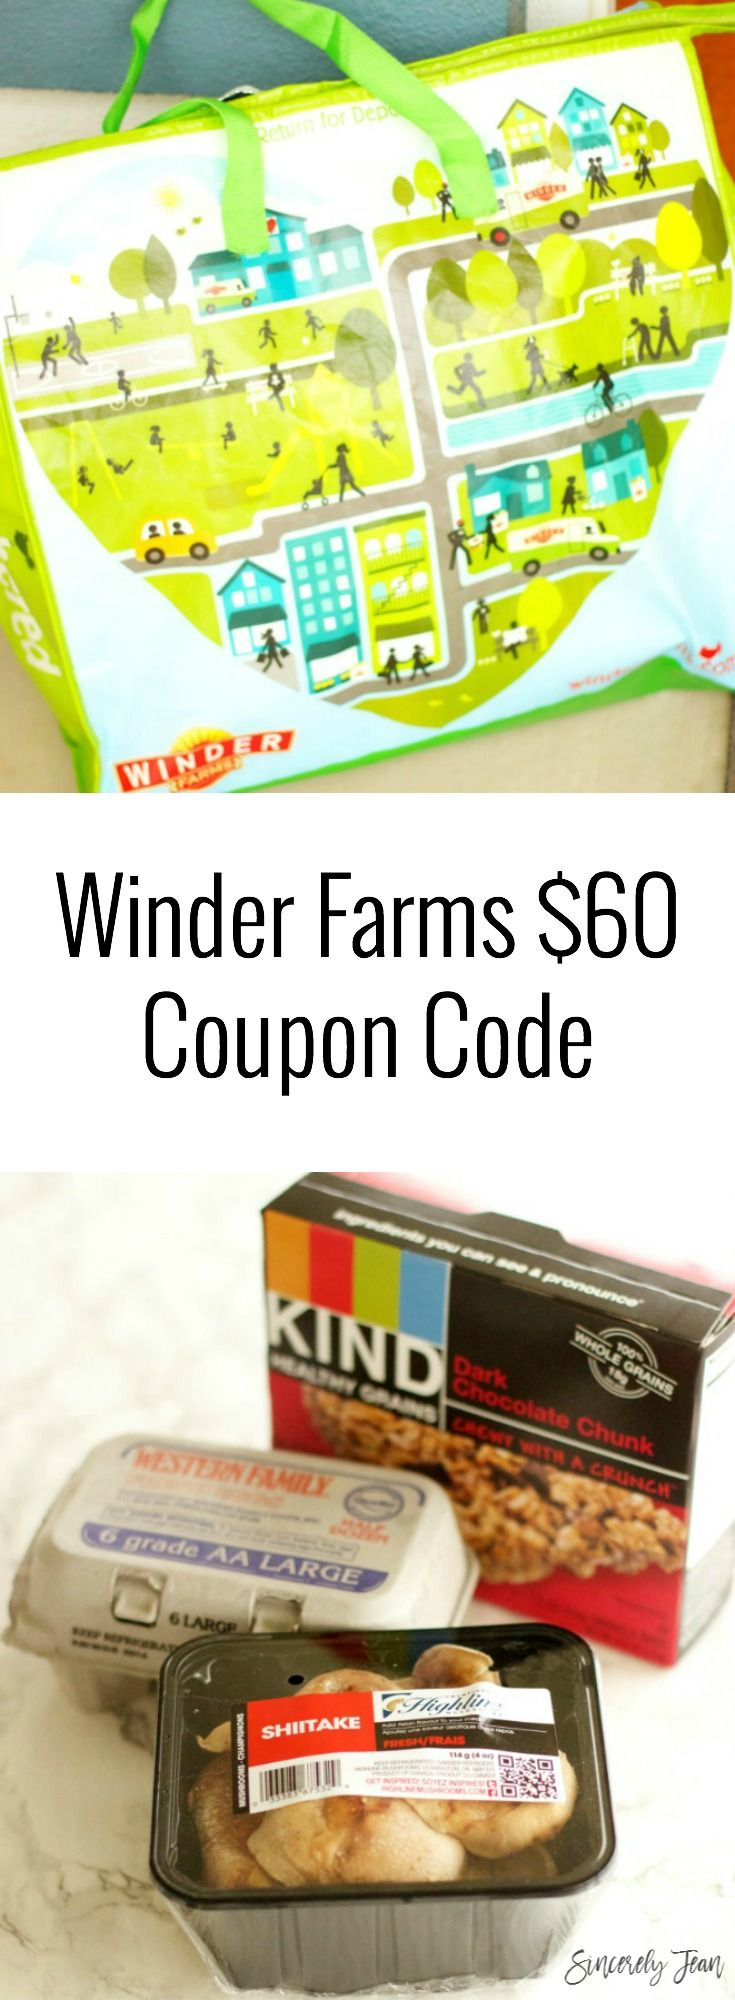 $60 Winder Farms coupon code from SincerelyJean.com #grocery #delivery #service #coupon #groceries #easy #winderfarms #ad